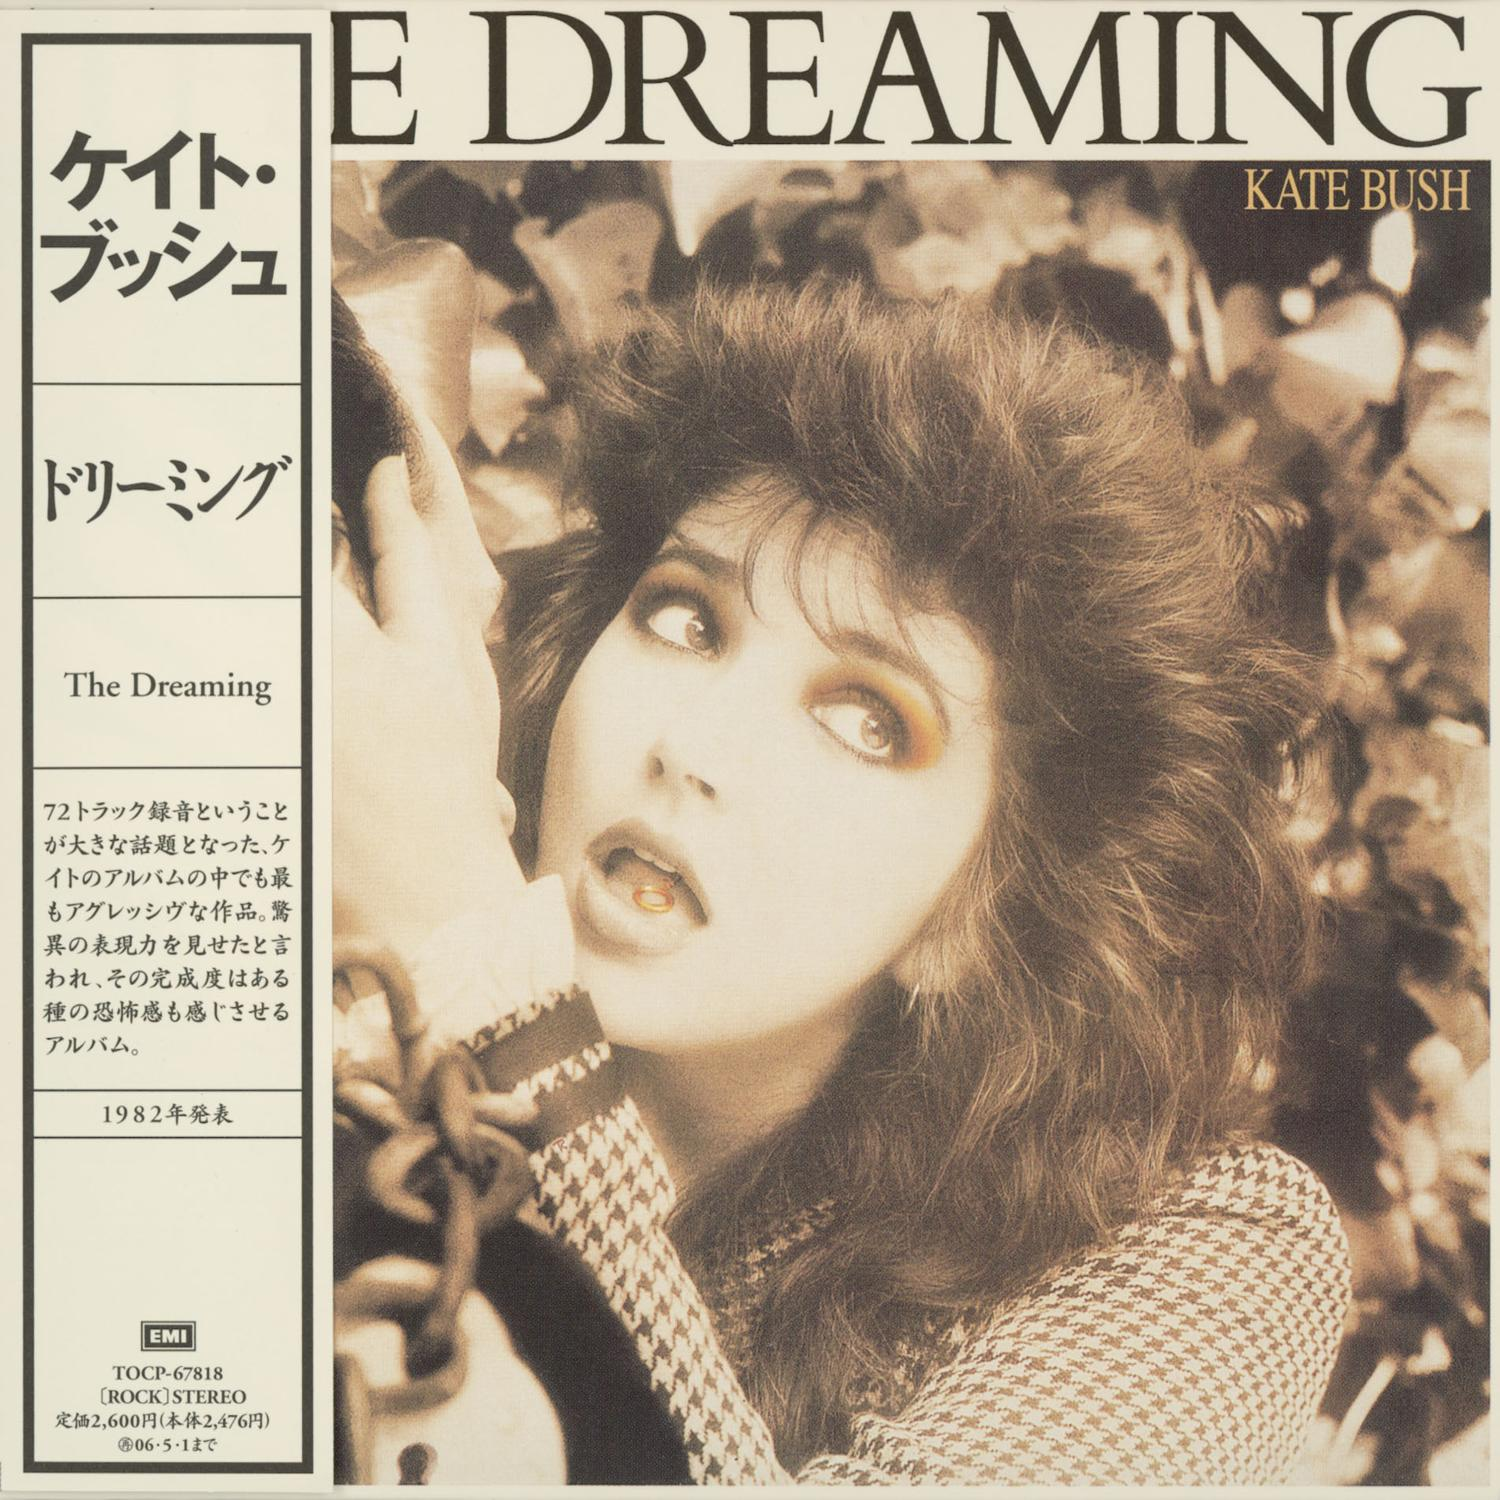 The Dreaming - Japanese Release - album cover